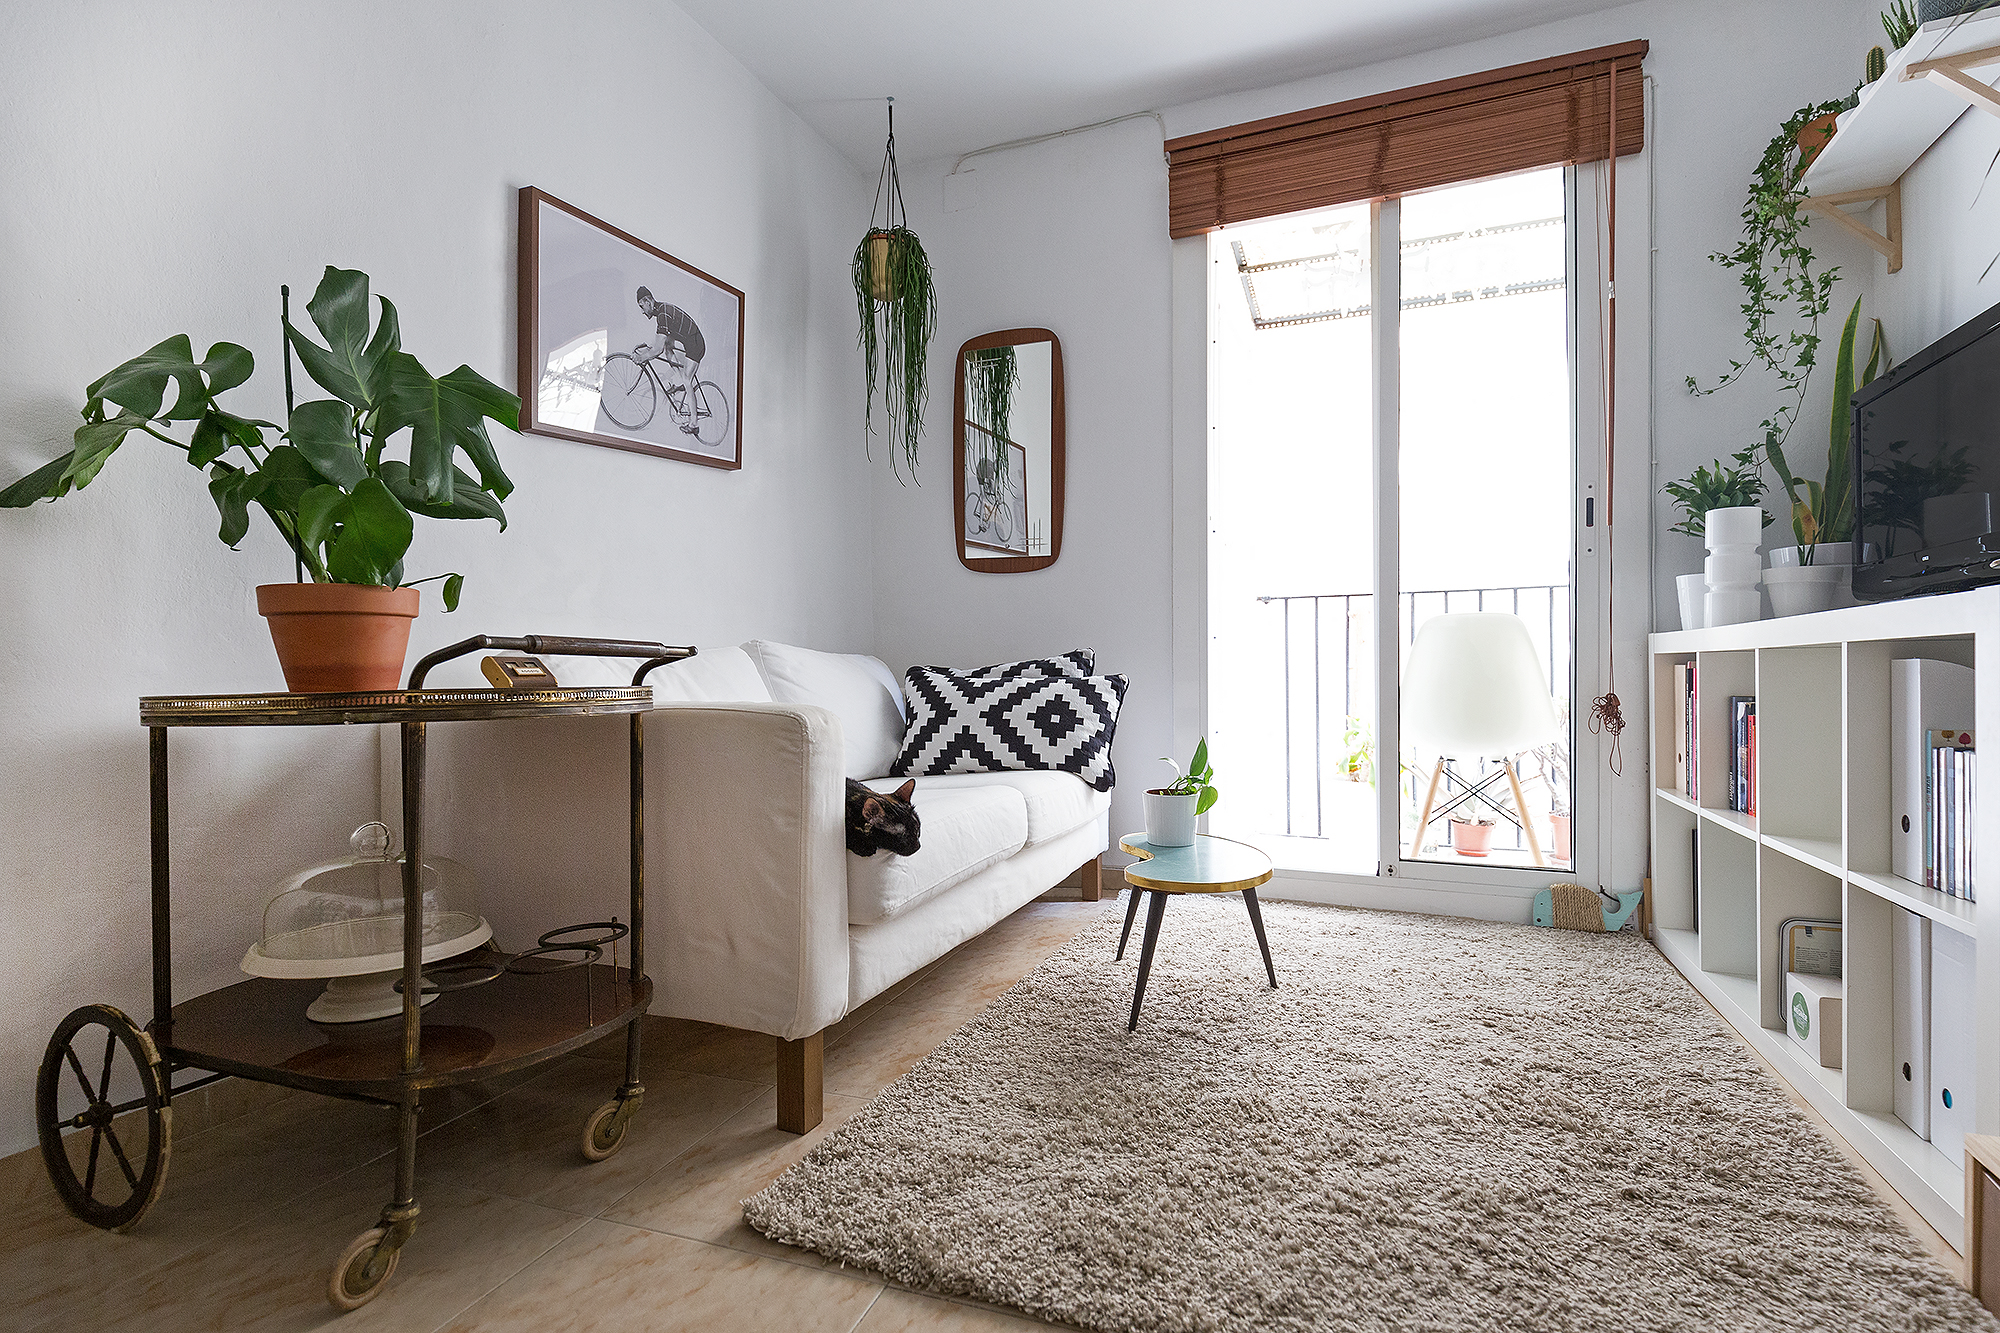 How to Design a Small Space Living Room | Apartment Therapy